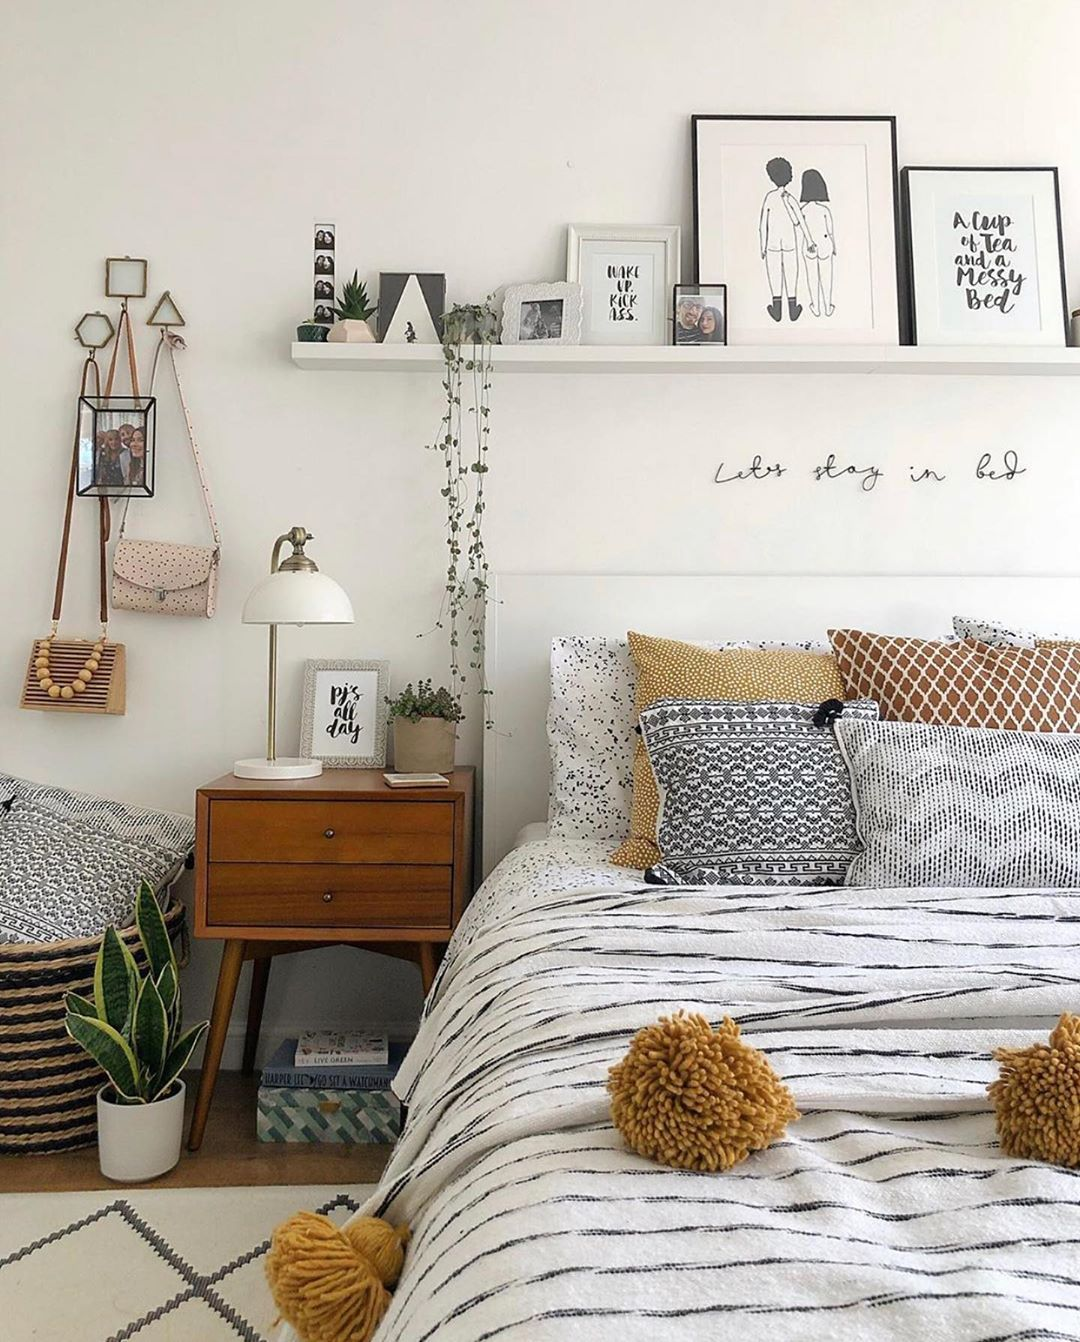 30 IDEAS TO DECOR YOUR BED ROOM IN 2019 WINTER YOU CAN COPY